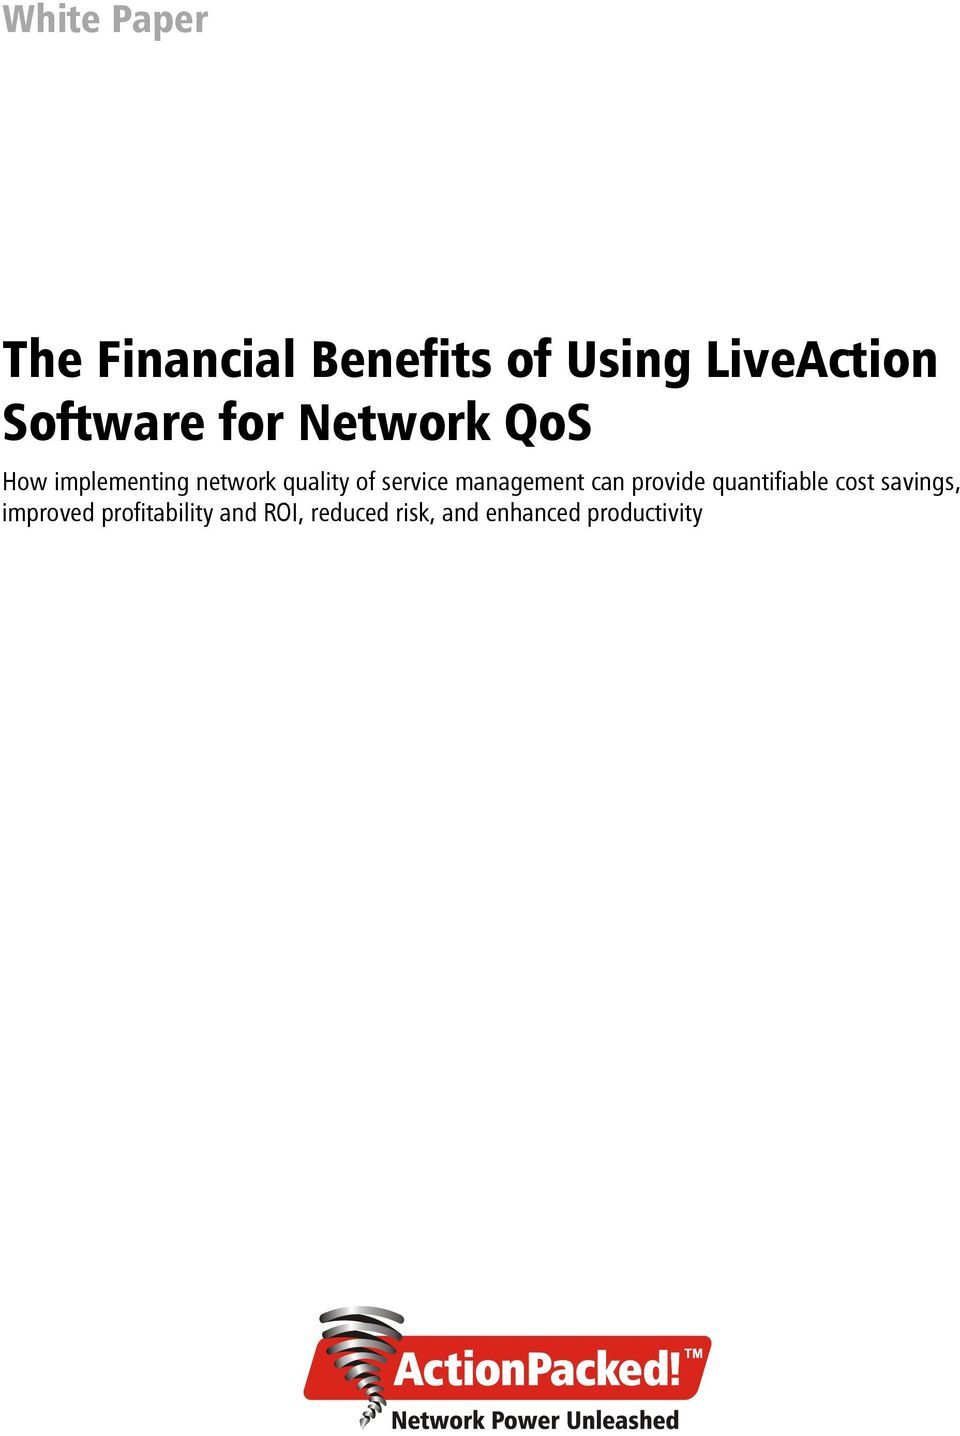 The Financial Benefits of Using LiveAction Software for